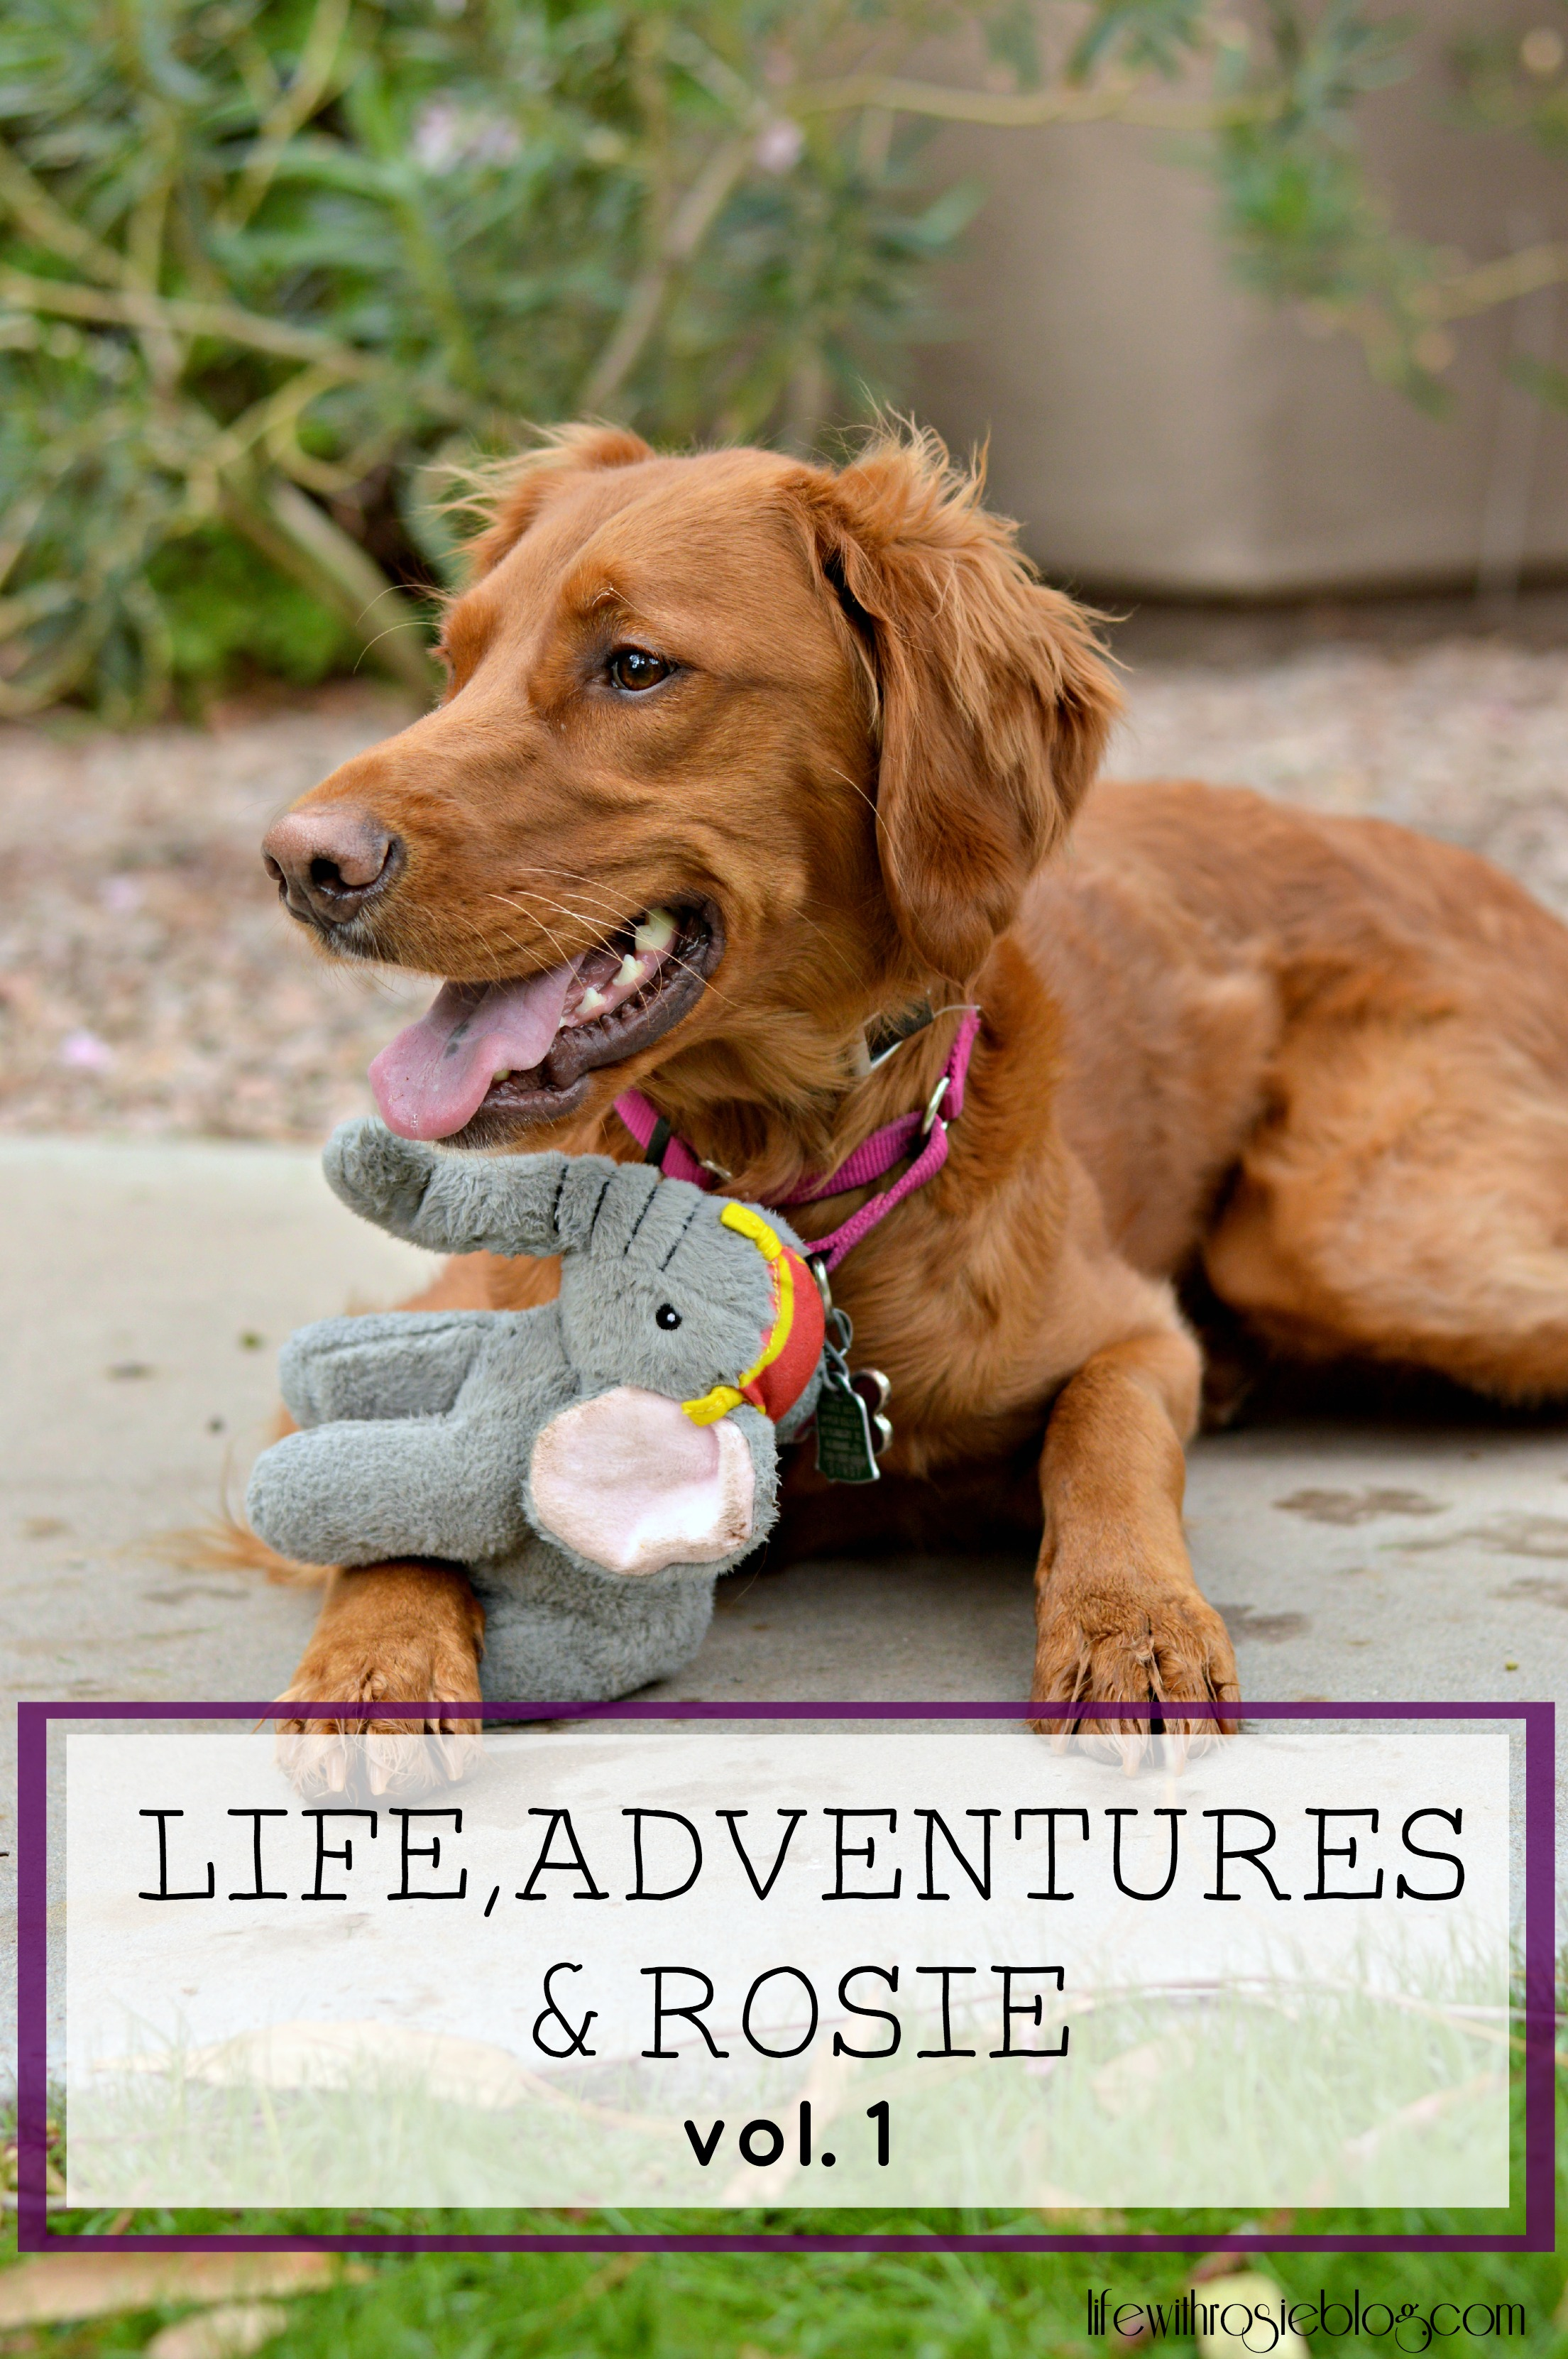 Life, Adventures & Rosie Vol 1 // Life with Rosie